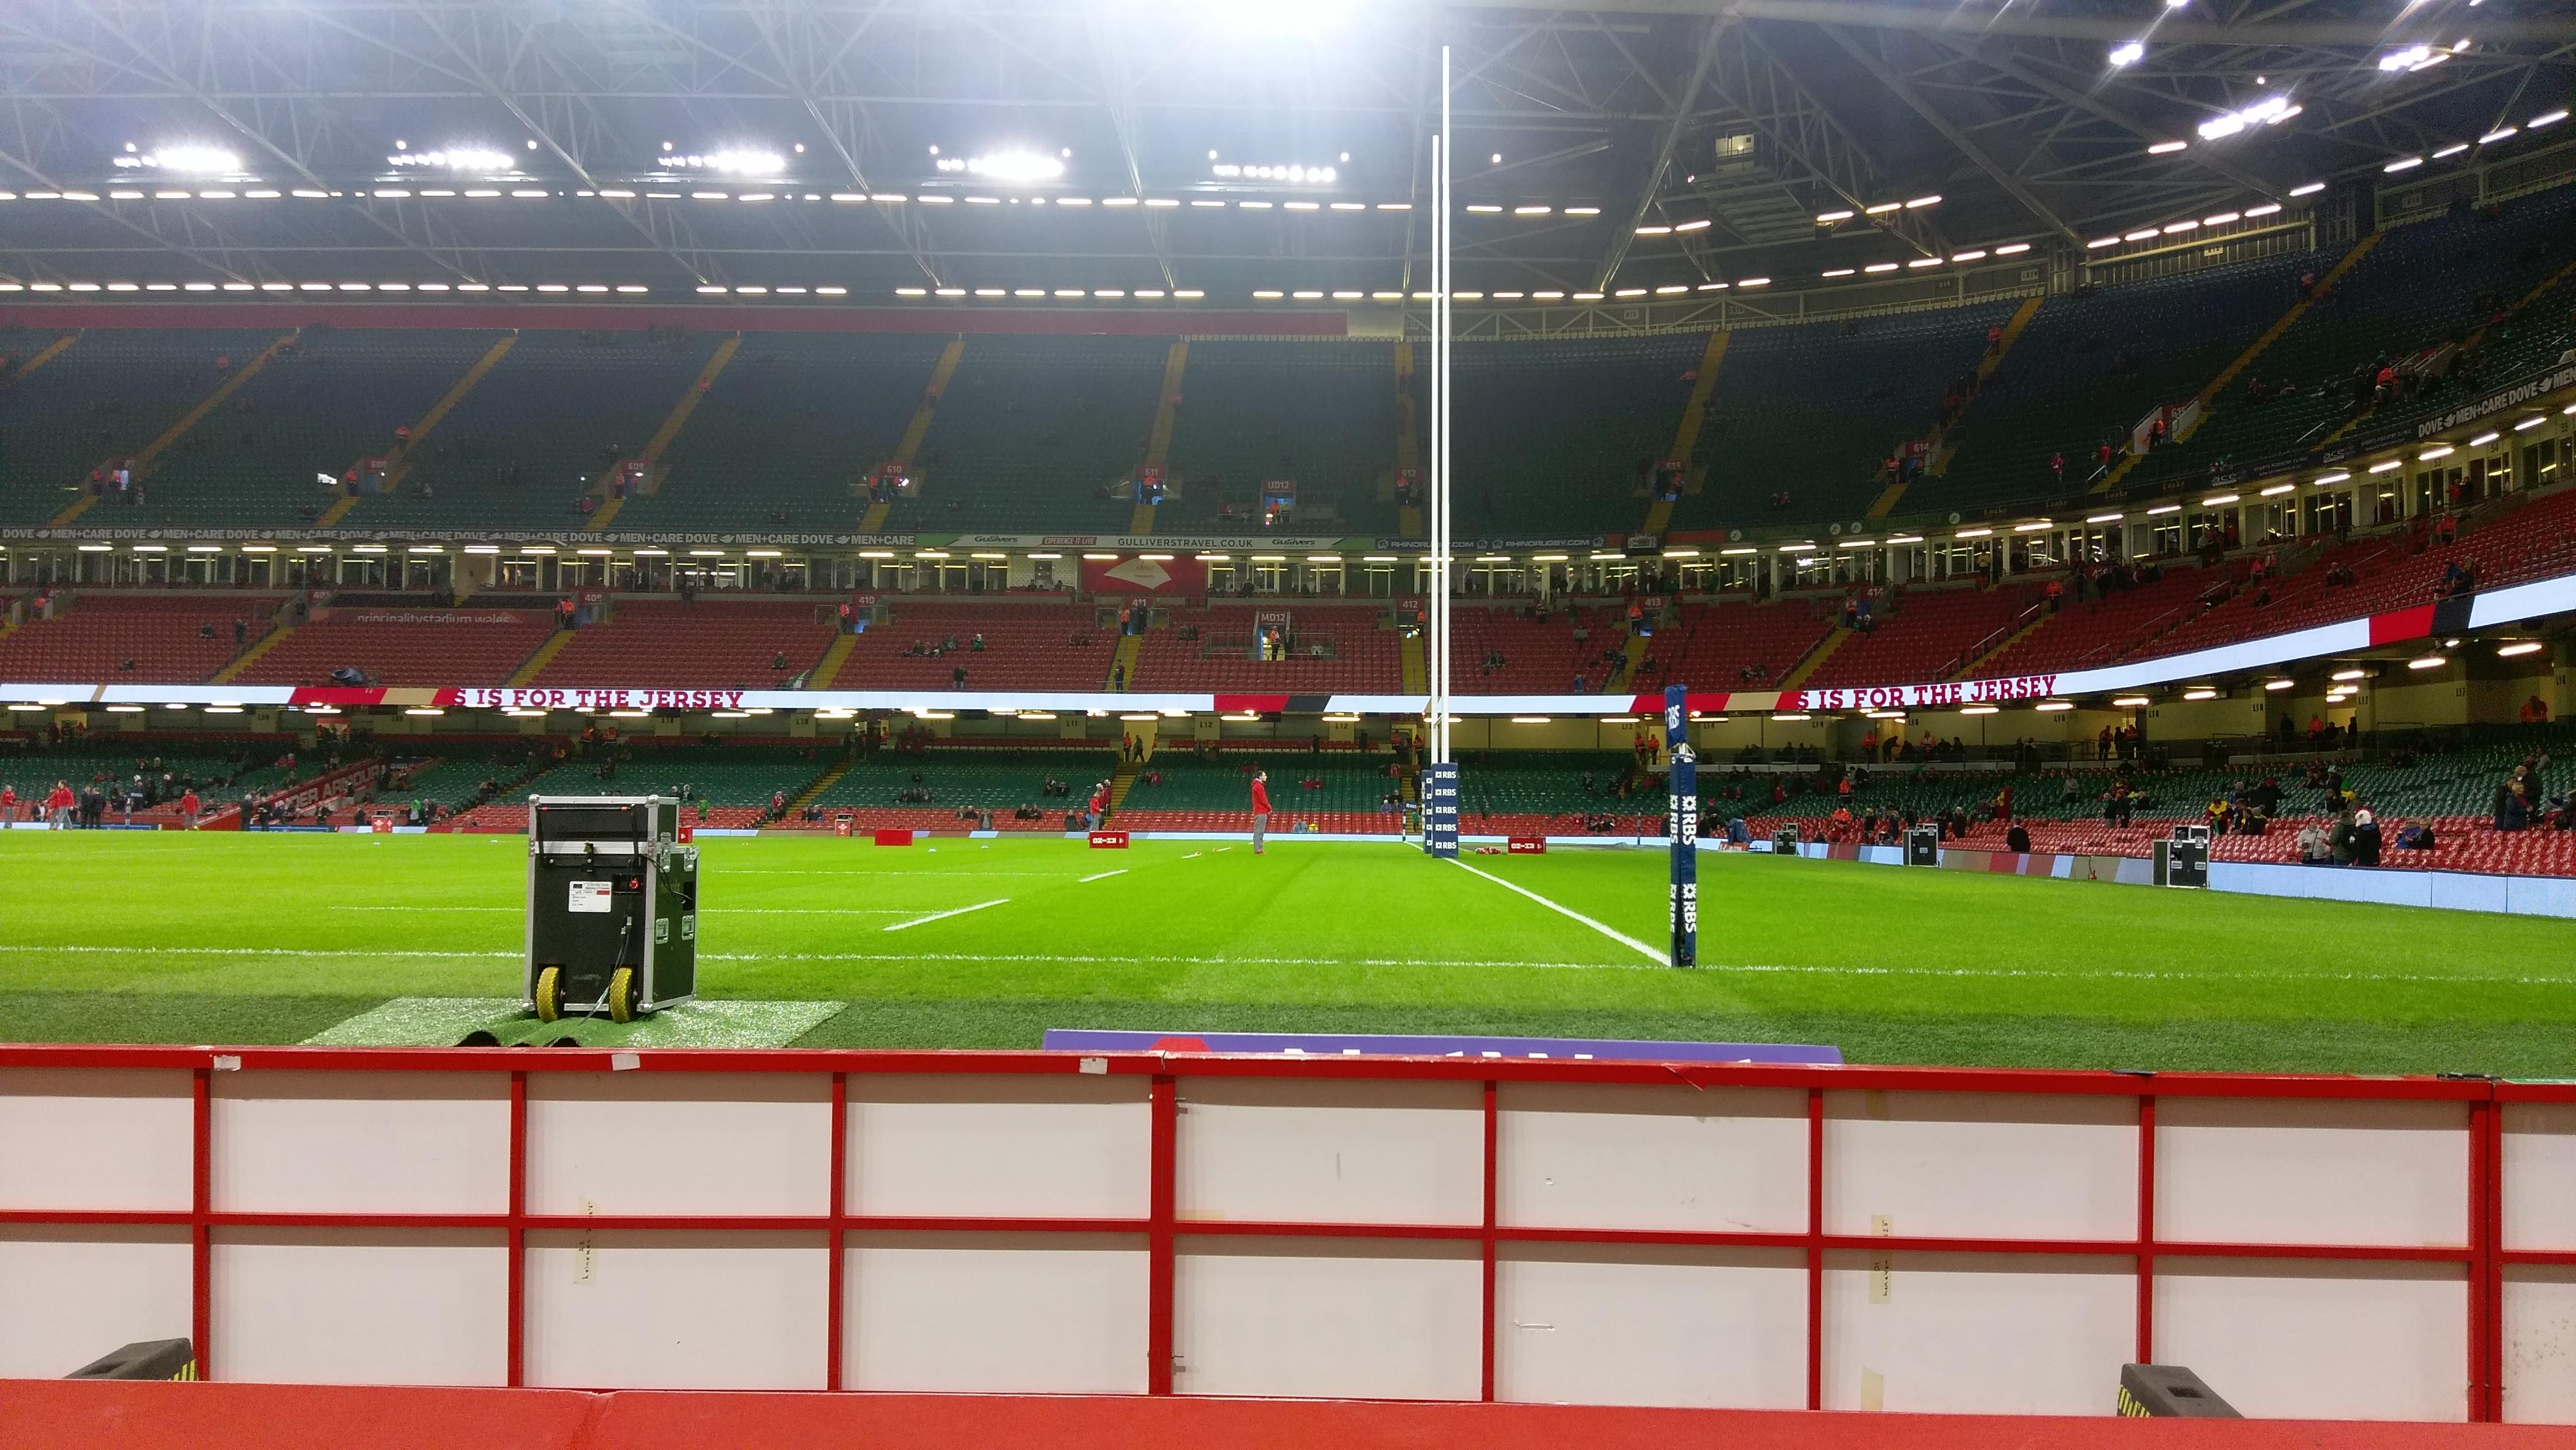 Principality Stadium Section L28 Row 3 Seat 24